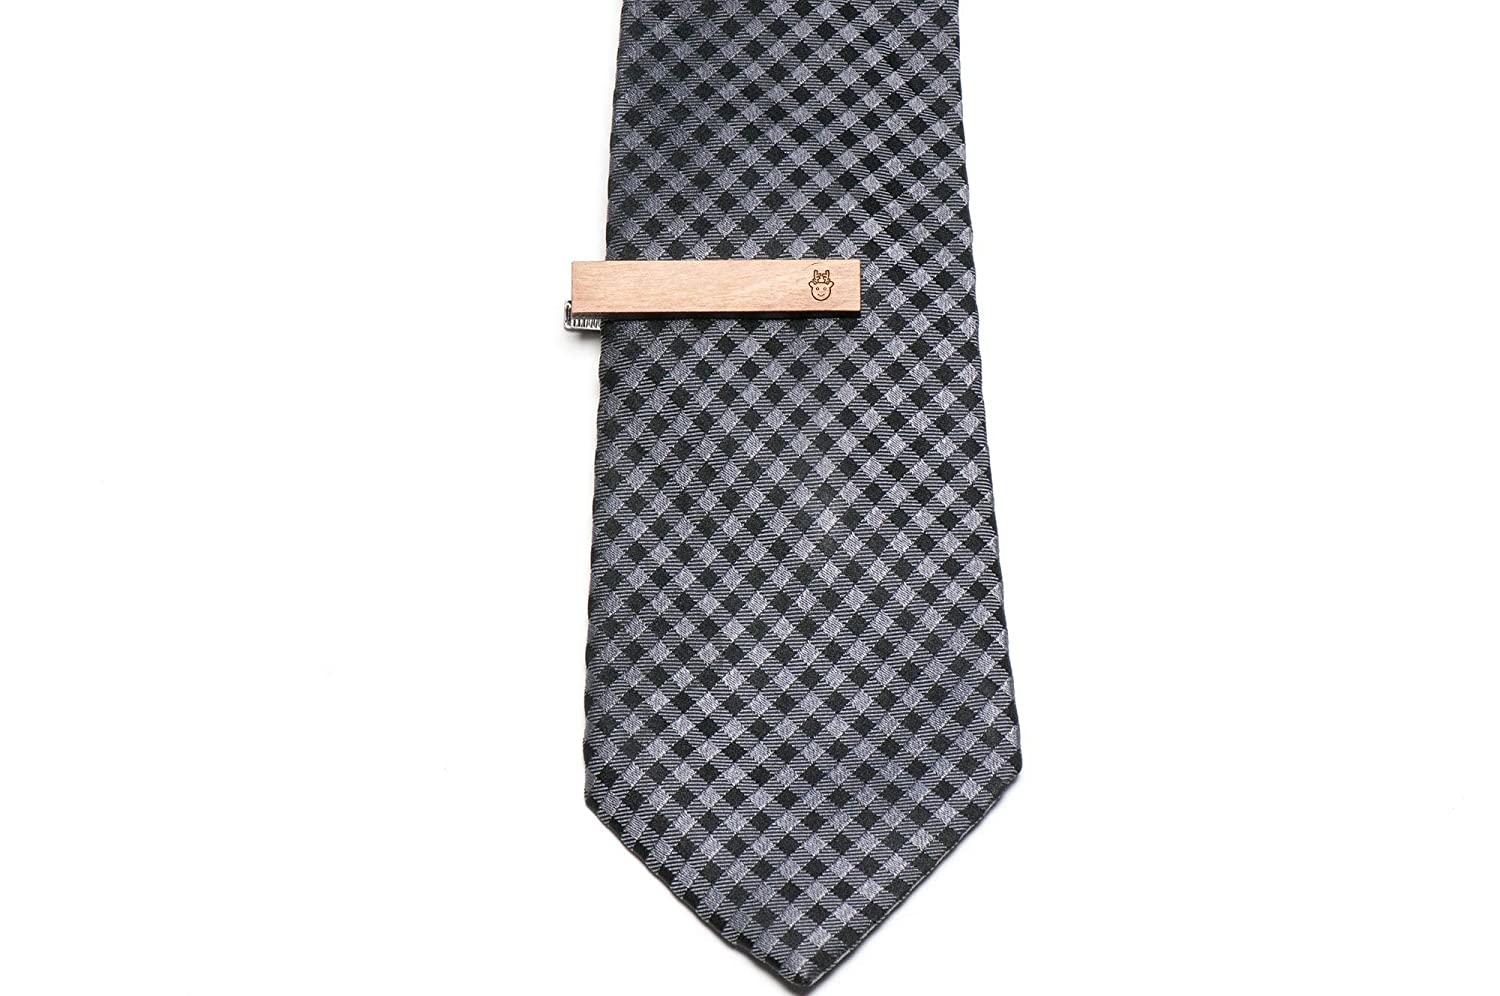 Wooden Accessories Company Wooden Tie Clips with Laser Engraved Reindeer Head Design Cherry Wood Tie Bar Engraved in The USA